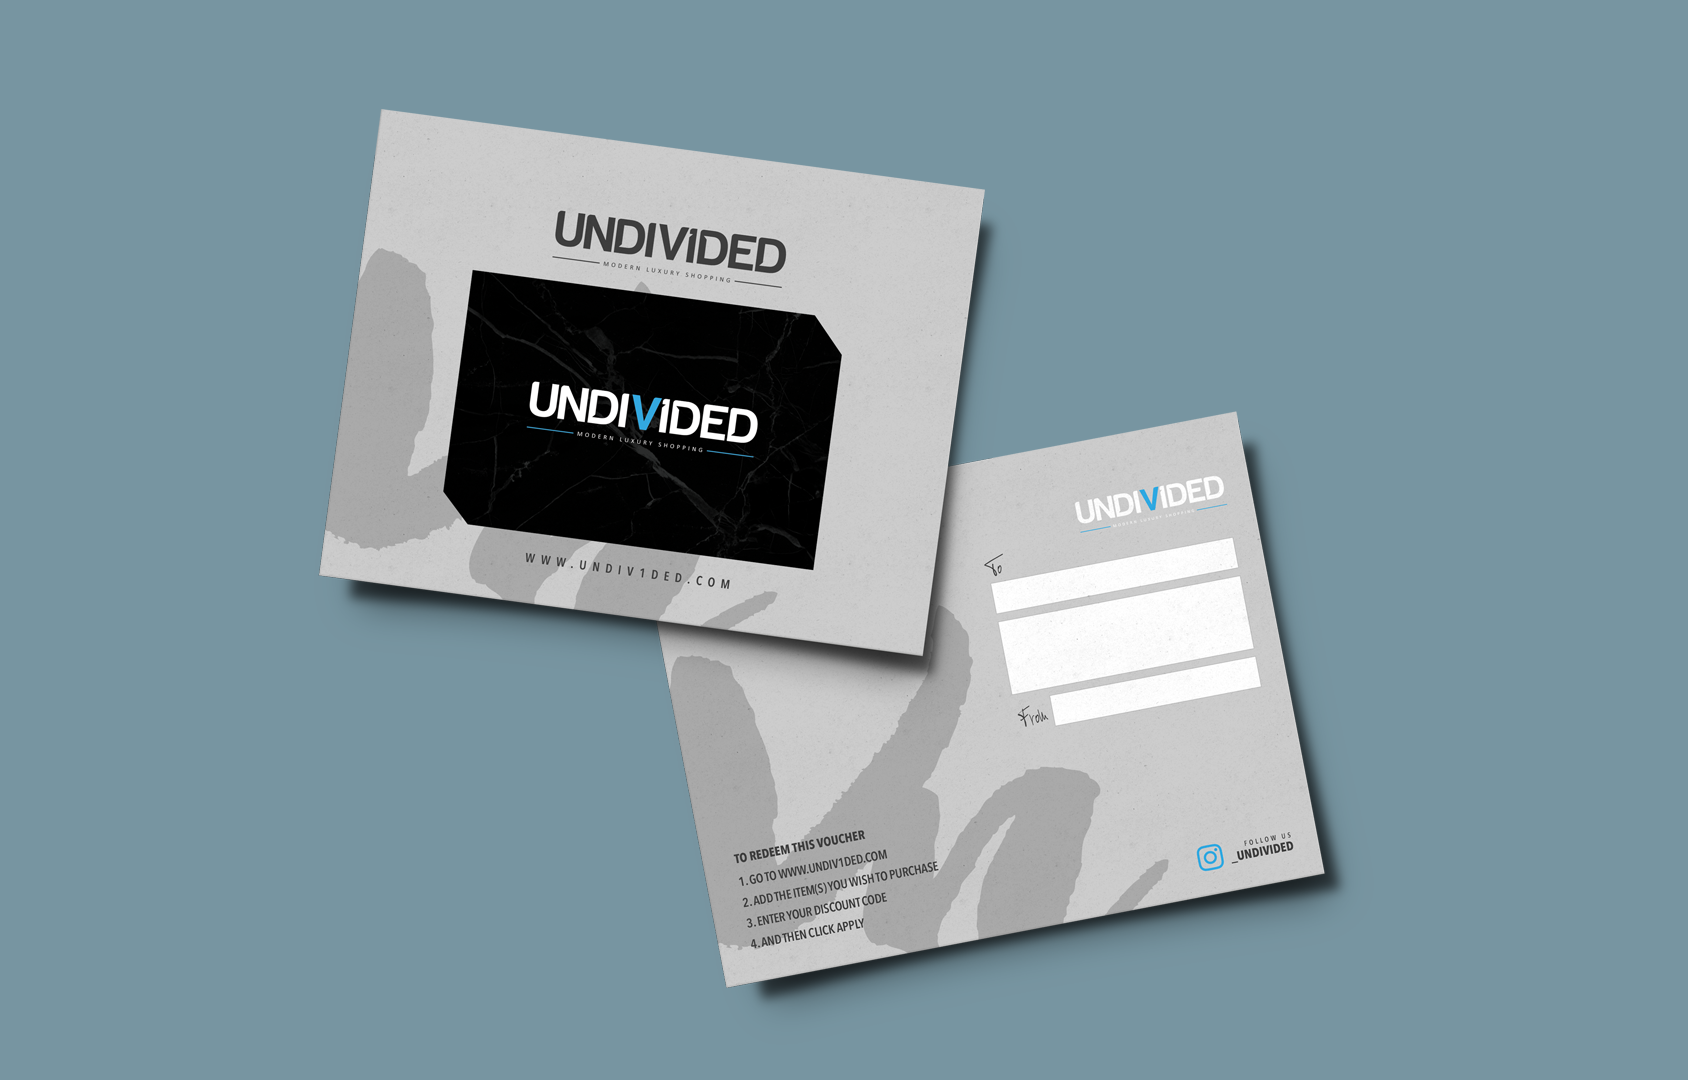 https://www.p360agency.co.uk/project/undivided/